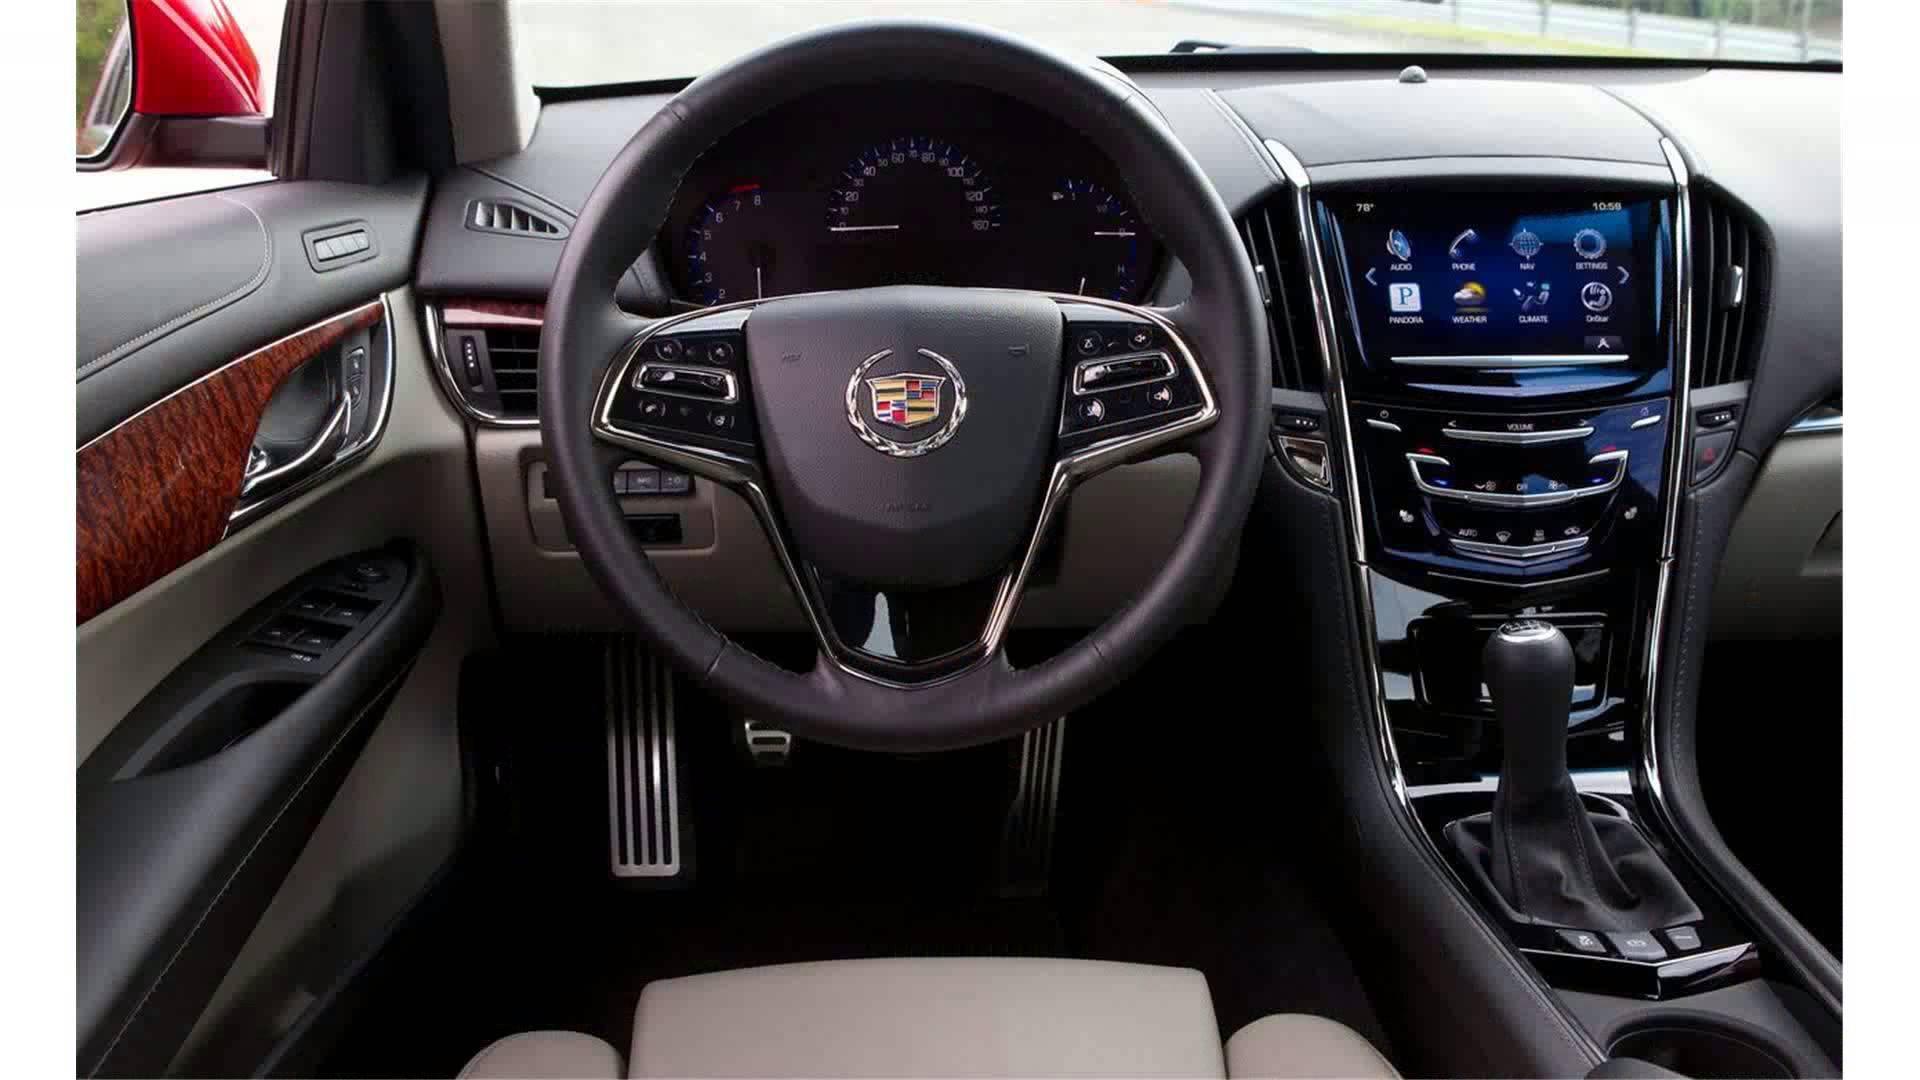 digital srx cadillac the grill olympus reader cars camera truth about toothy review